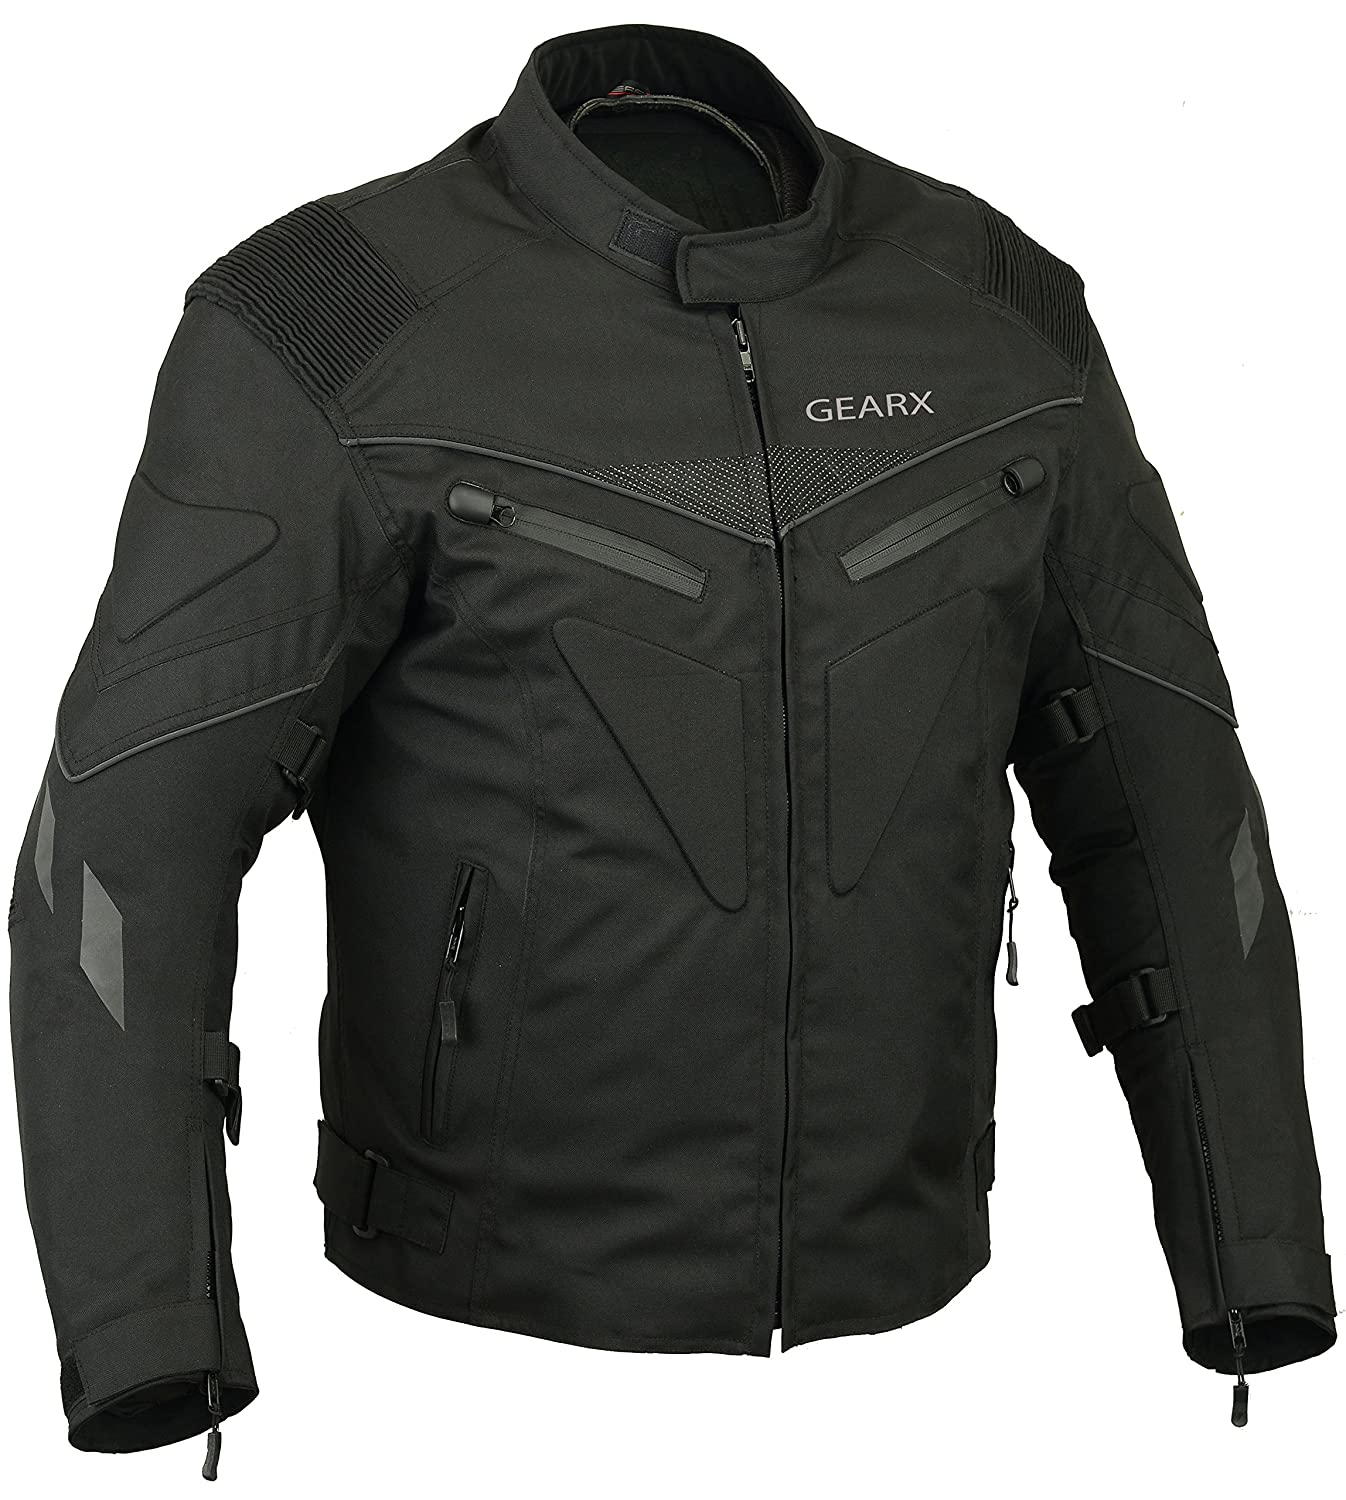 Amazon.com: Spine paded Motorcycle Jacket Waterproof ...